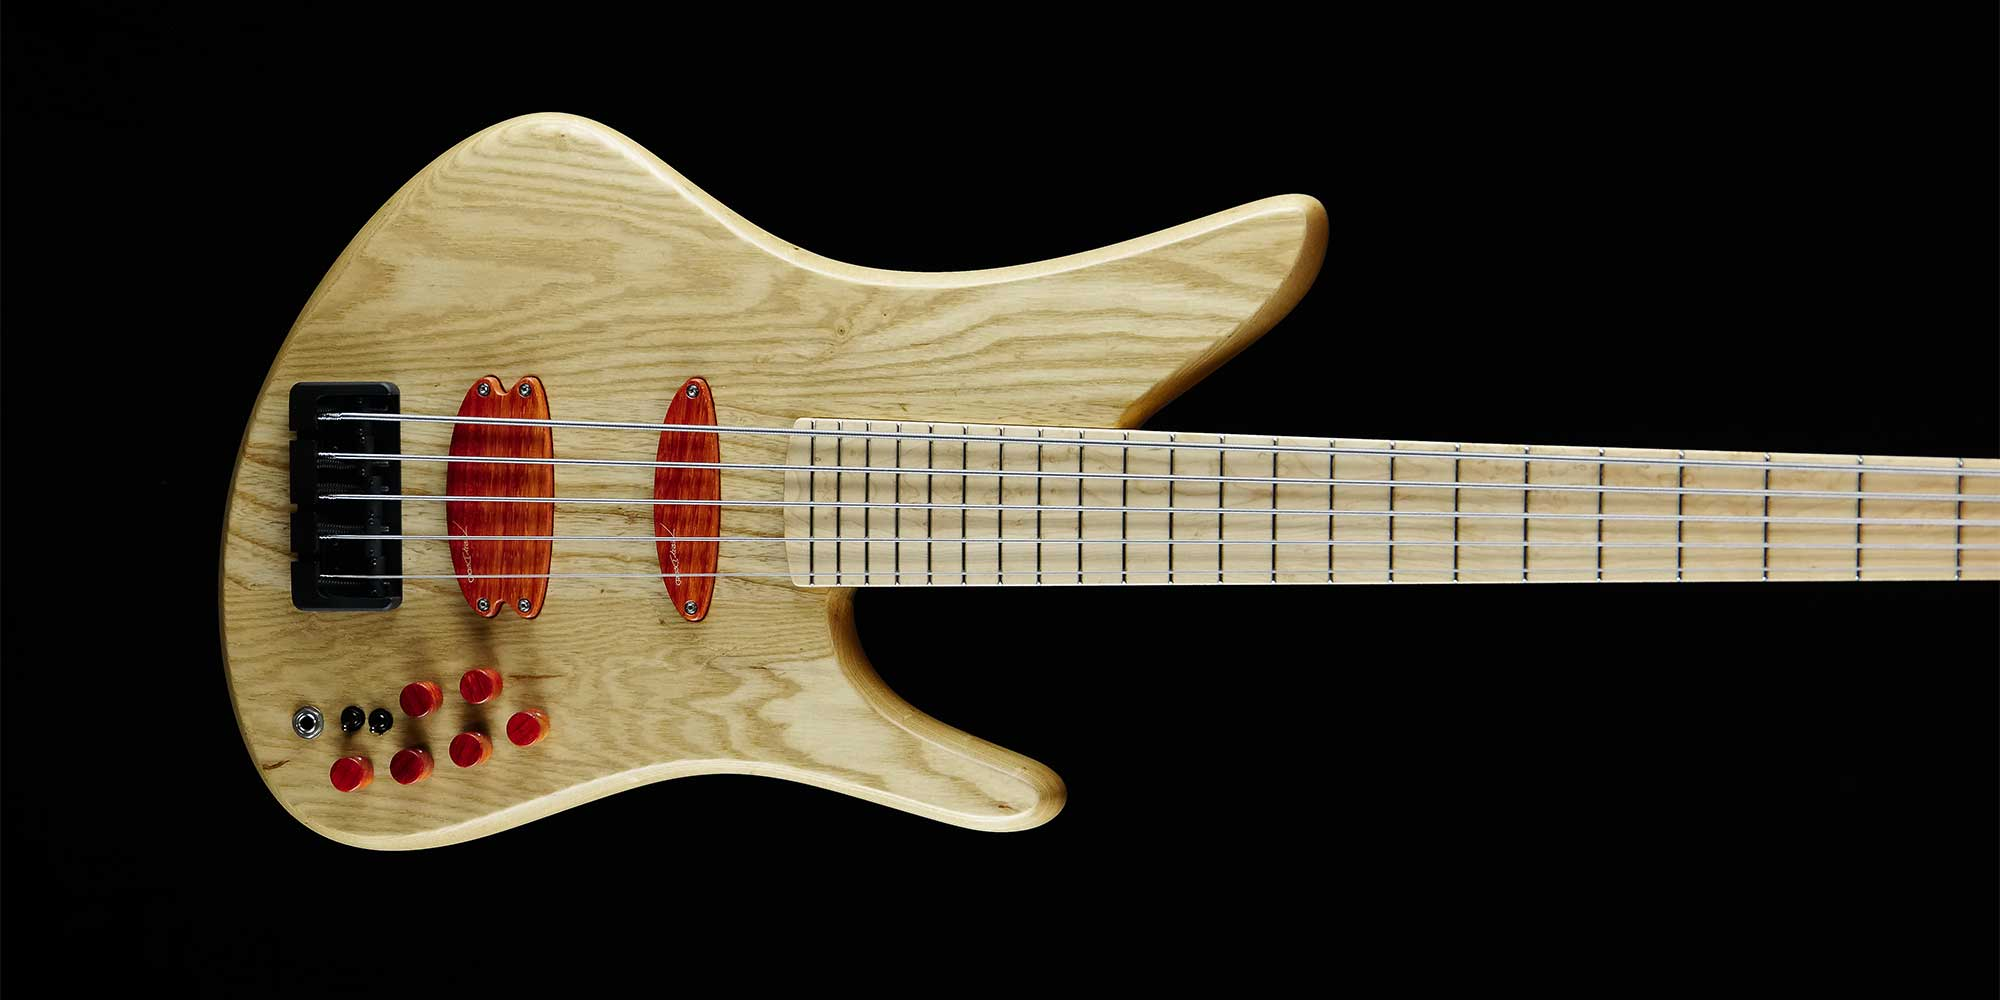 prelude bass guitar back view small